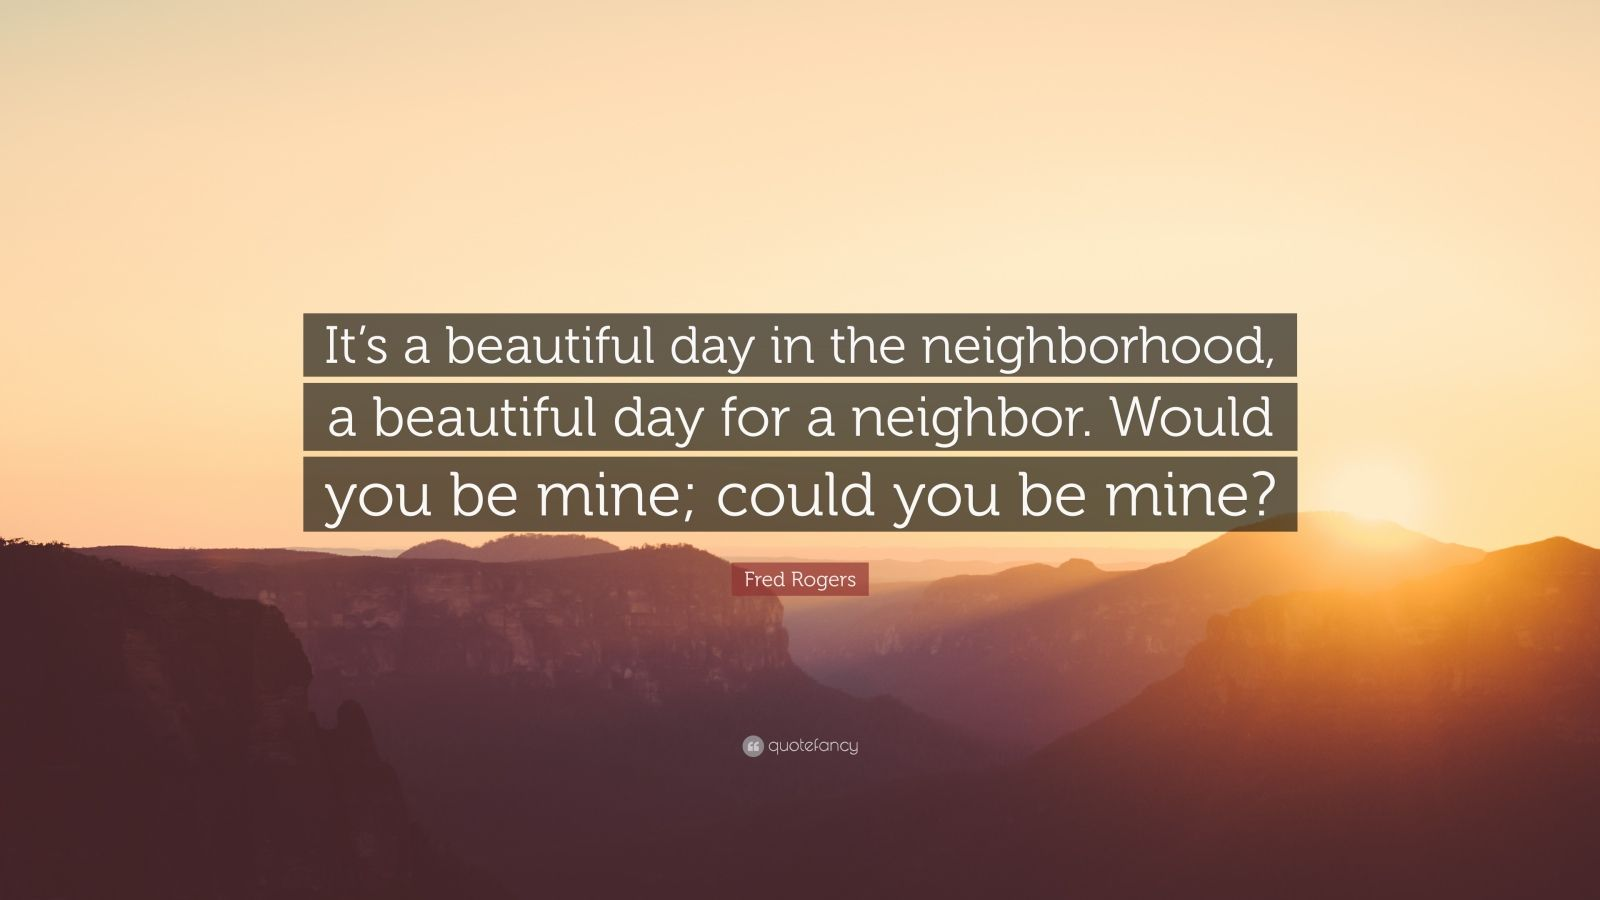 Fred Rogers Quote It S A Beautiful Day In The Neighborhood A Beautiful Day For A Neighbor Would You Be Mine Could You Be Mine 9 Wallpapers Quotefancy